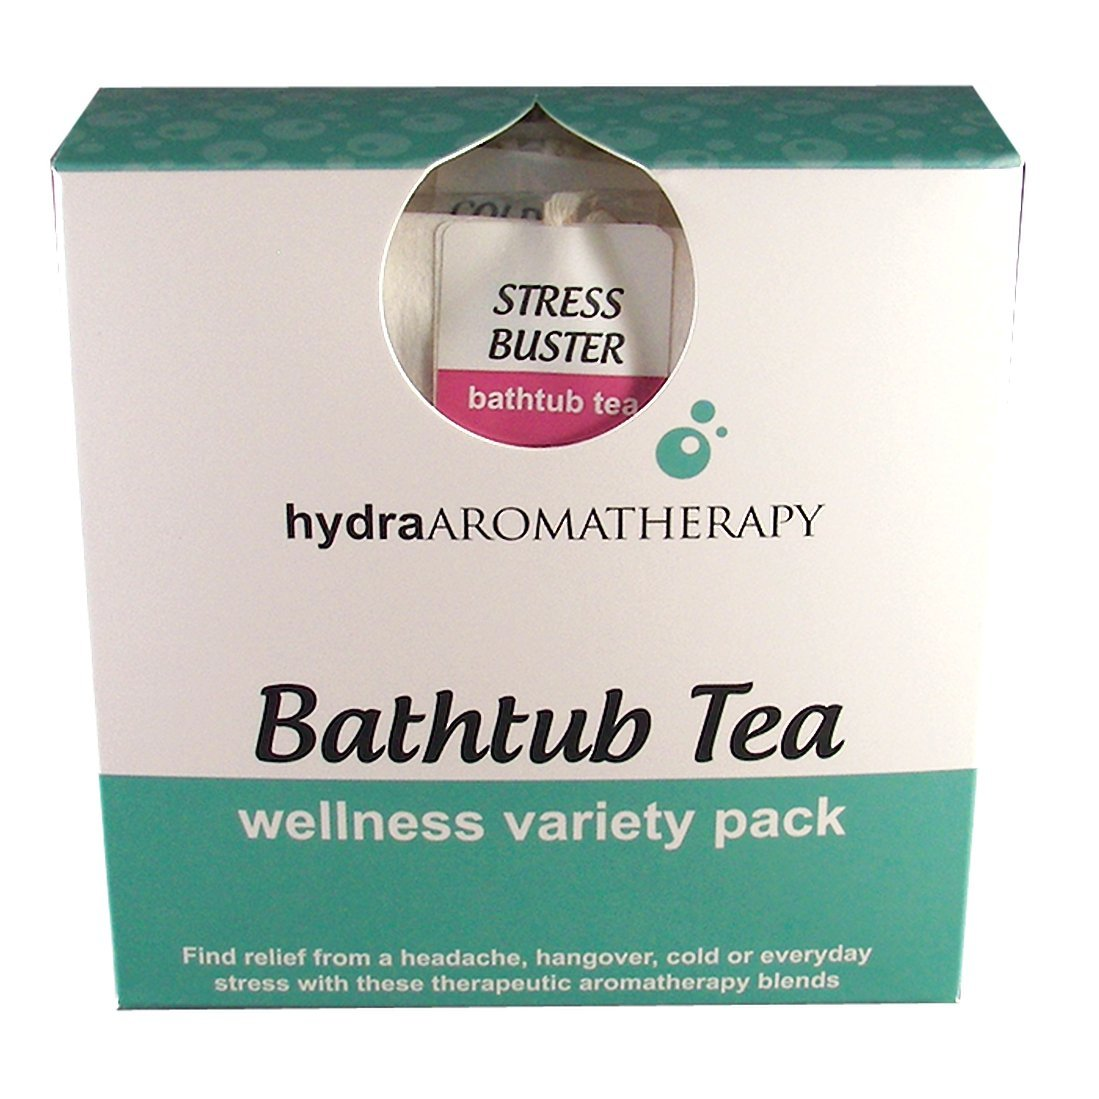 hydraAromatherapy Bathtub Tea Wellness Variety Pack Helix Retail